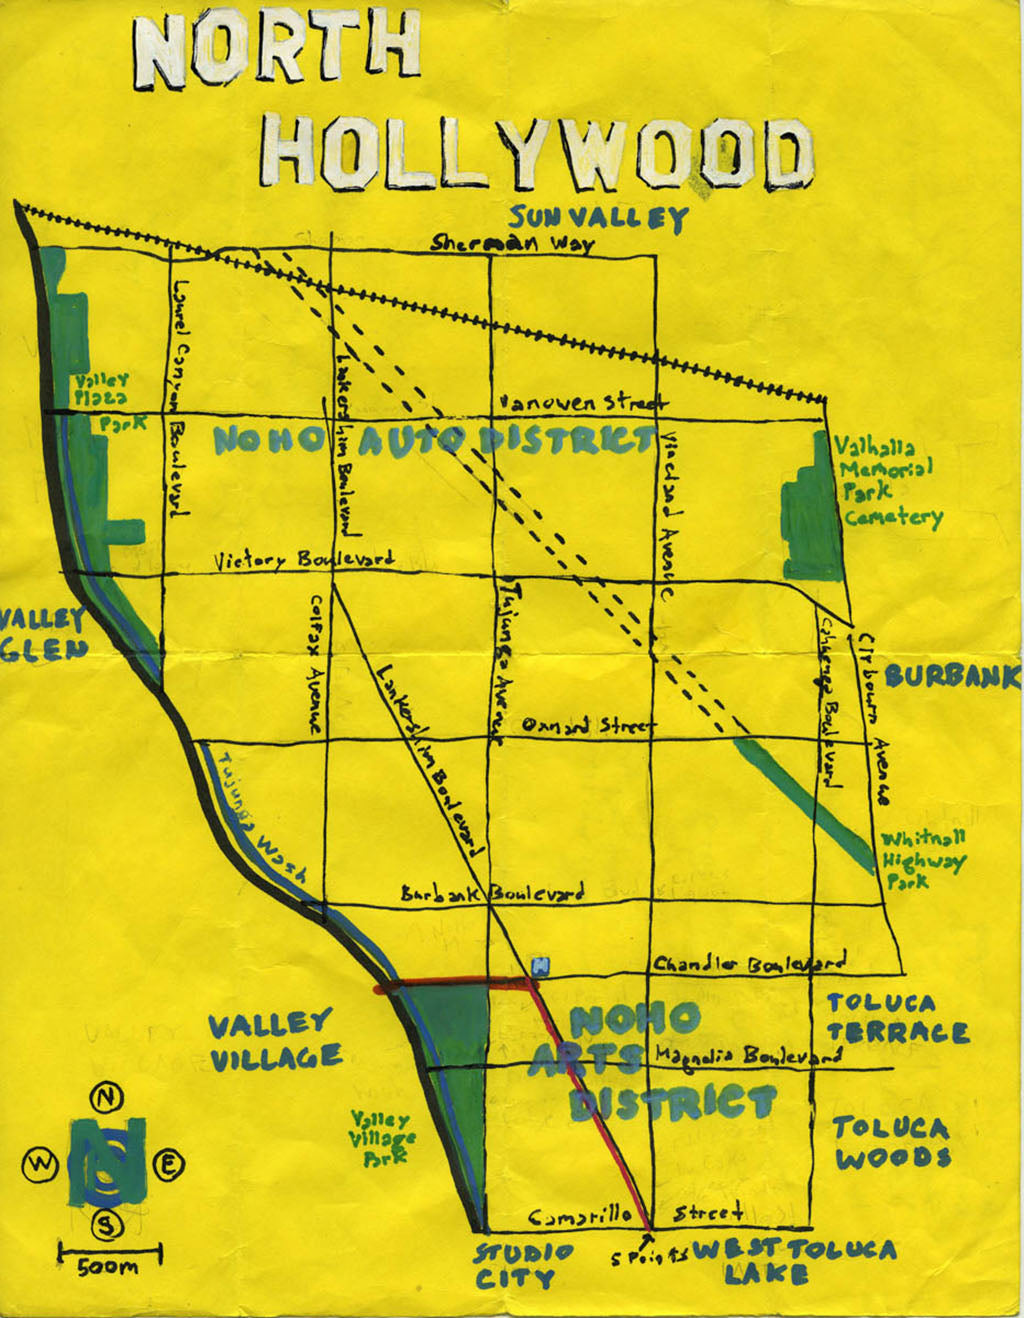 Pendersleigh Cartography North Hollywood by Eric Brightwell